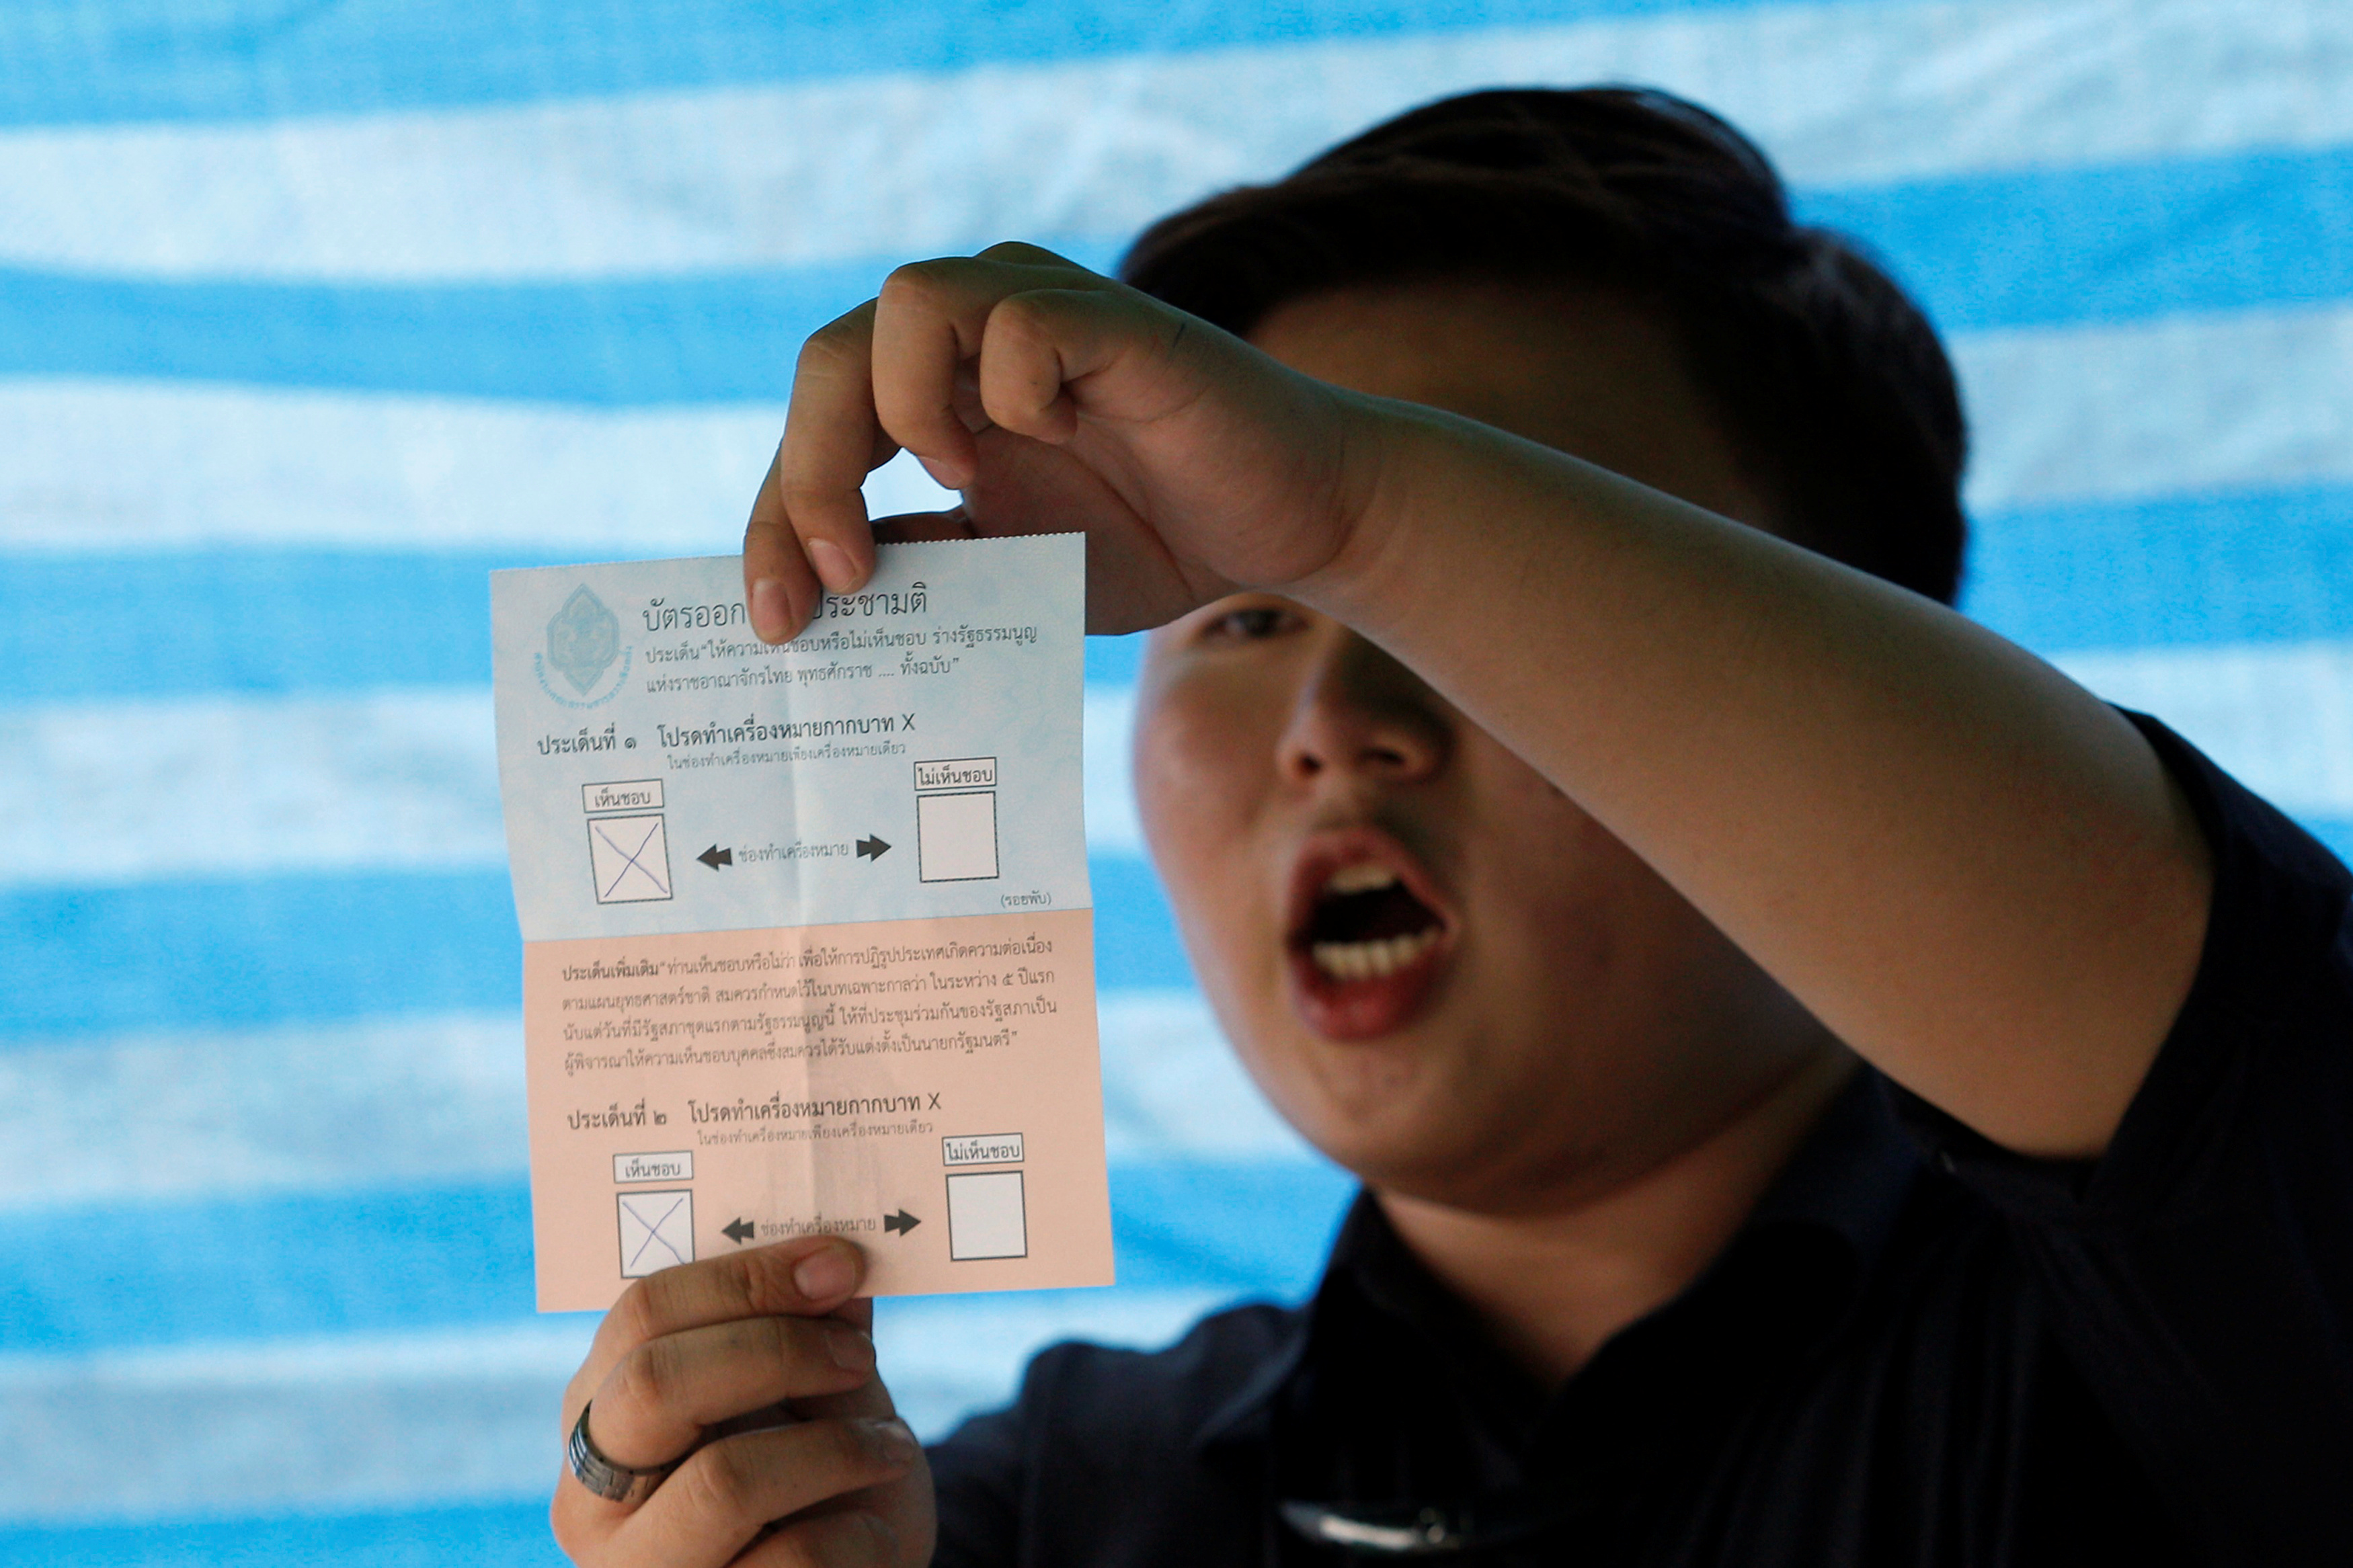 A Thai electoral worker starts counting ballots at a polling station in Bangkok during a constitutional referendum vote on Aug. 7, 2016